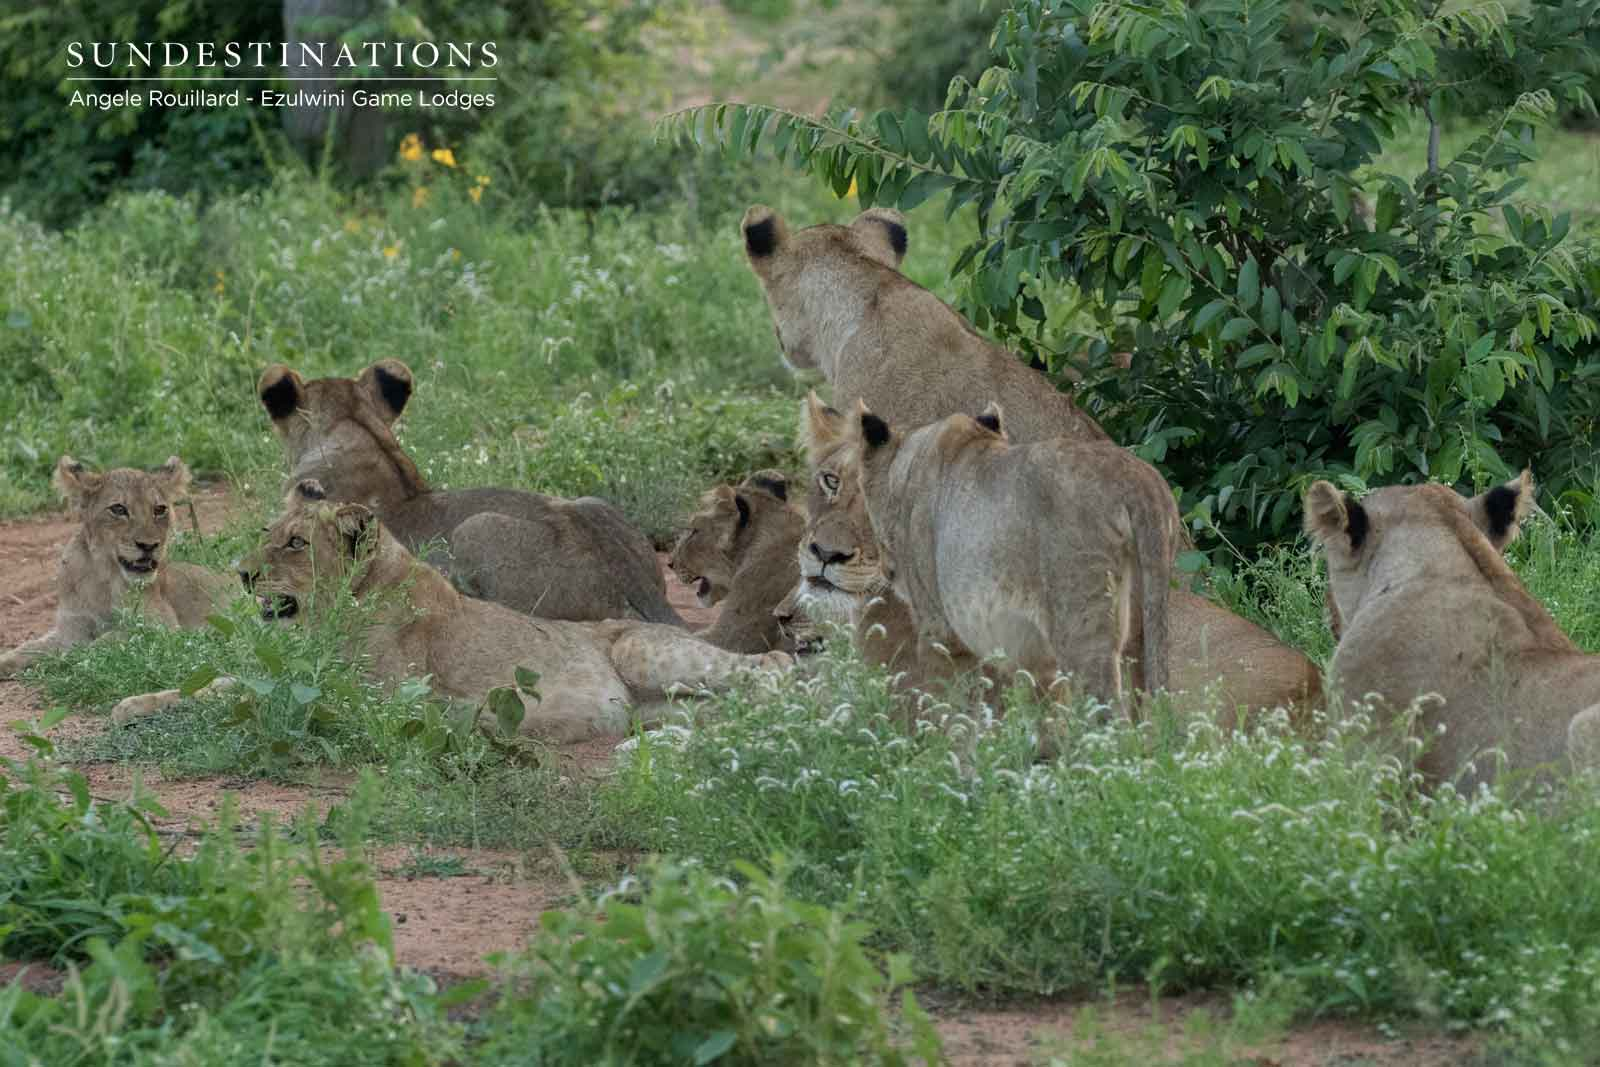 Kudyela Lionesses in Balule